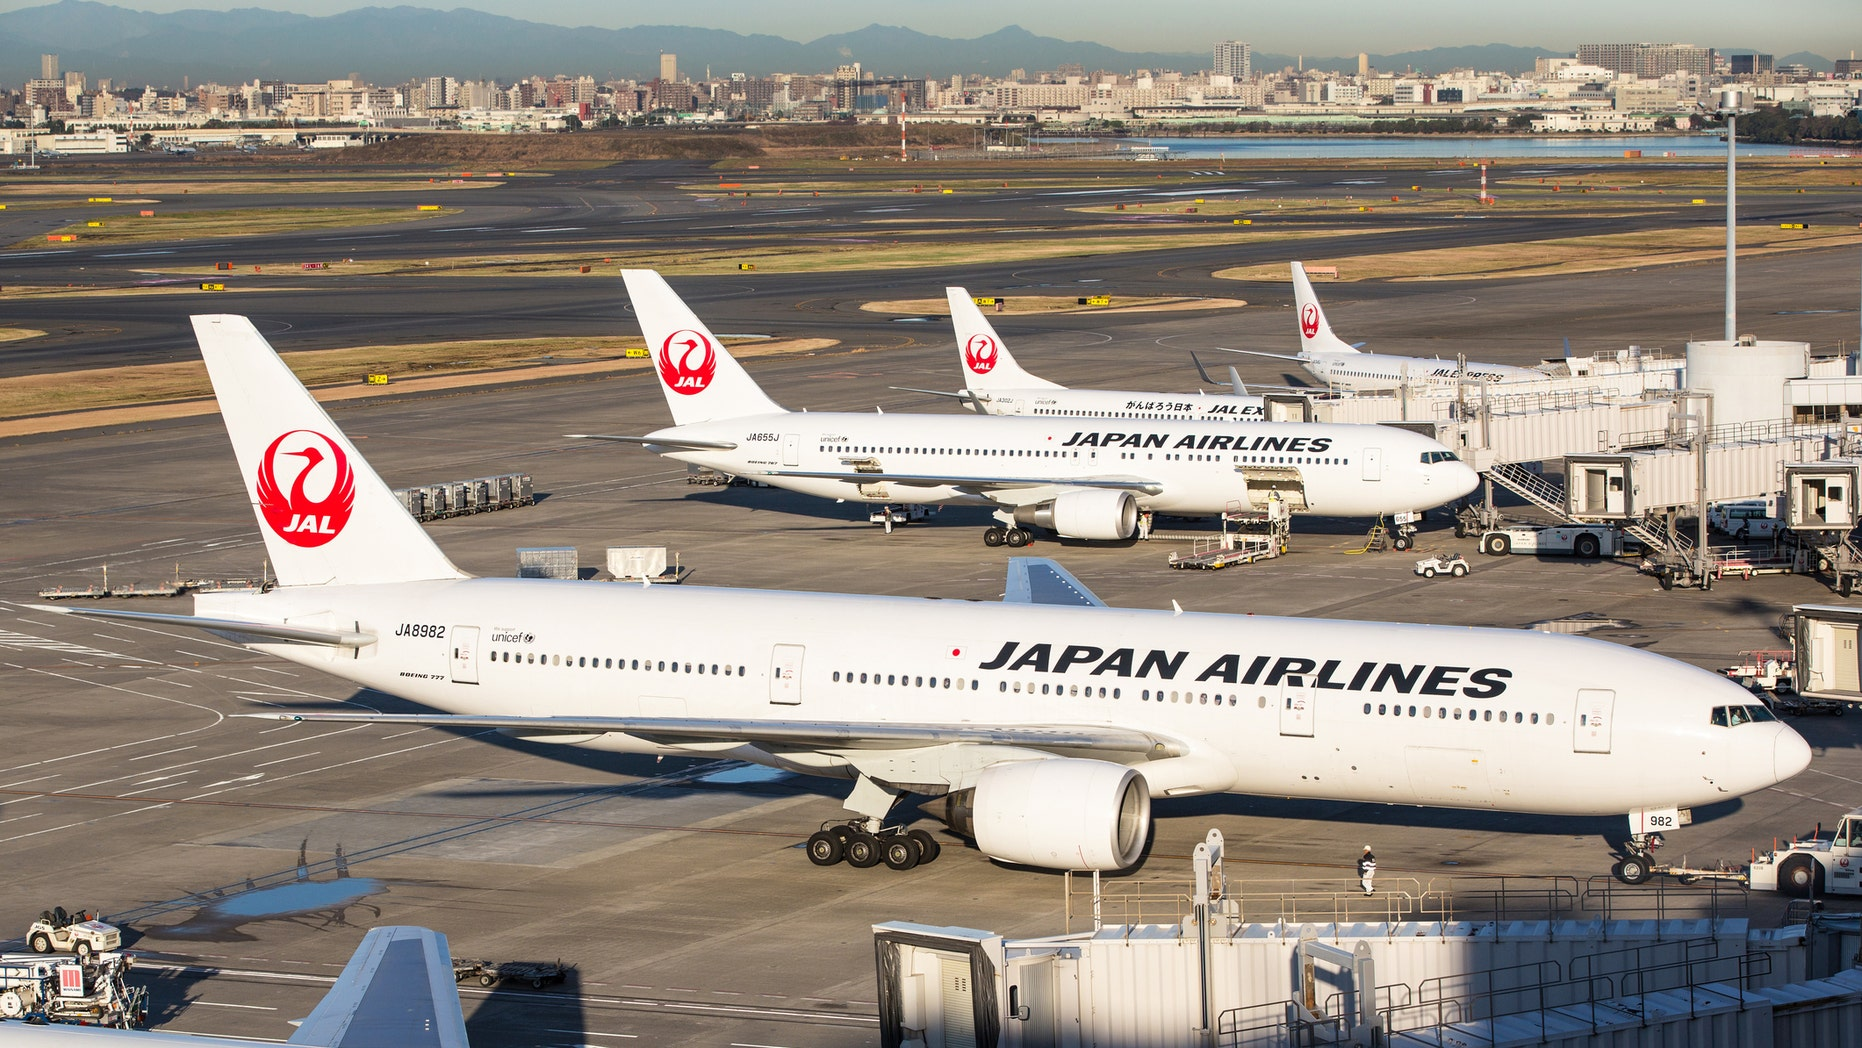 Japan Airlines Pilot Arrested at Heathrow Airport for Being Drunk